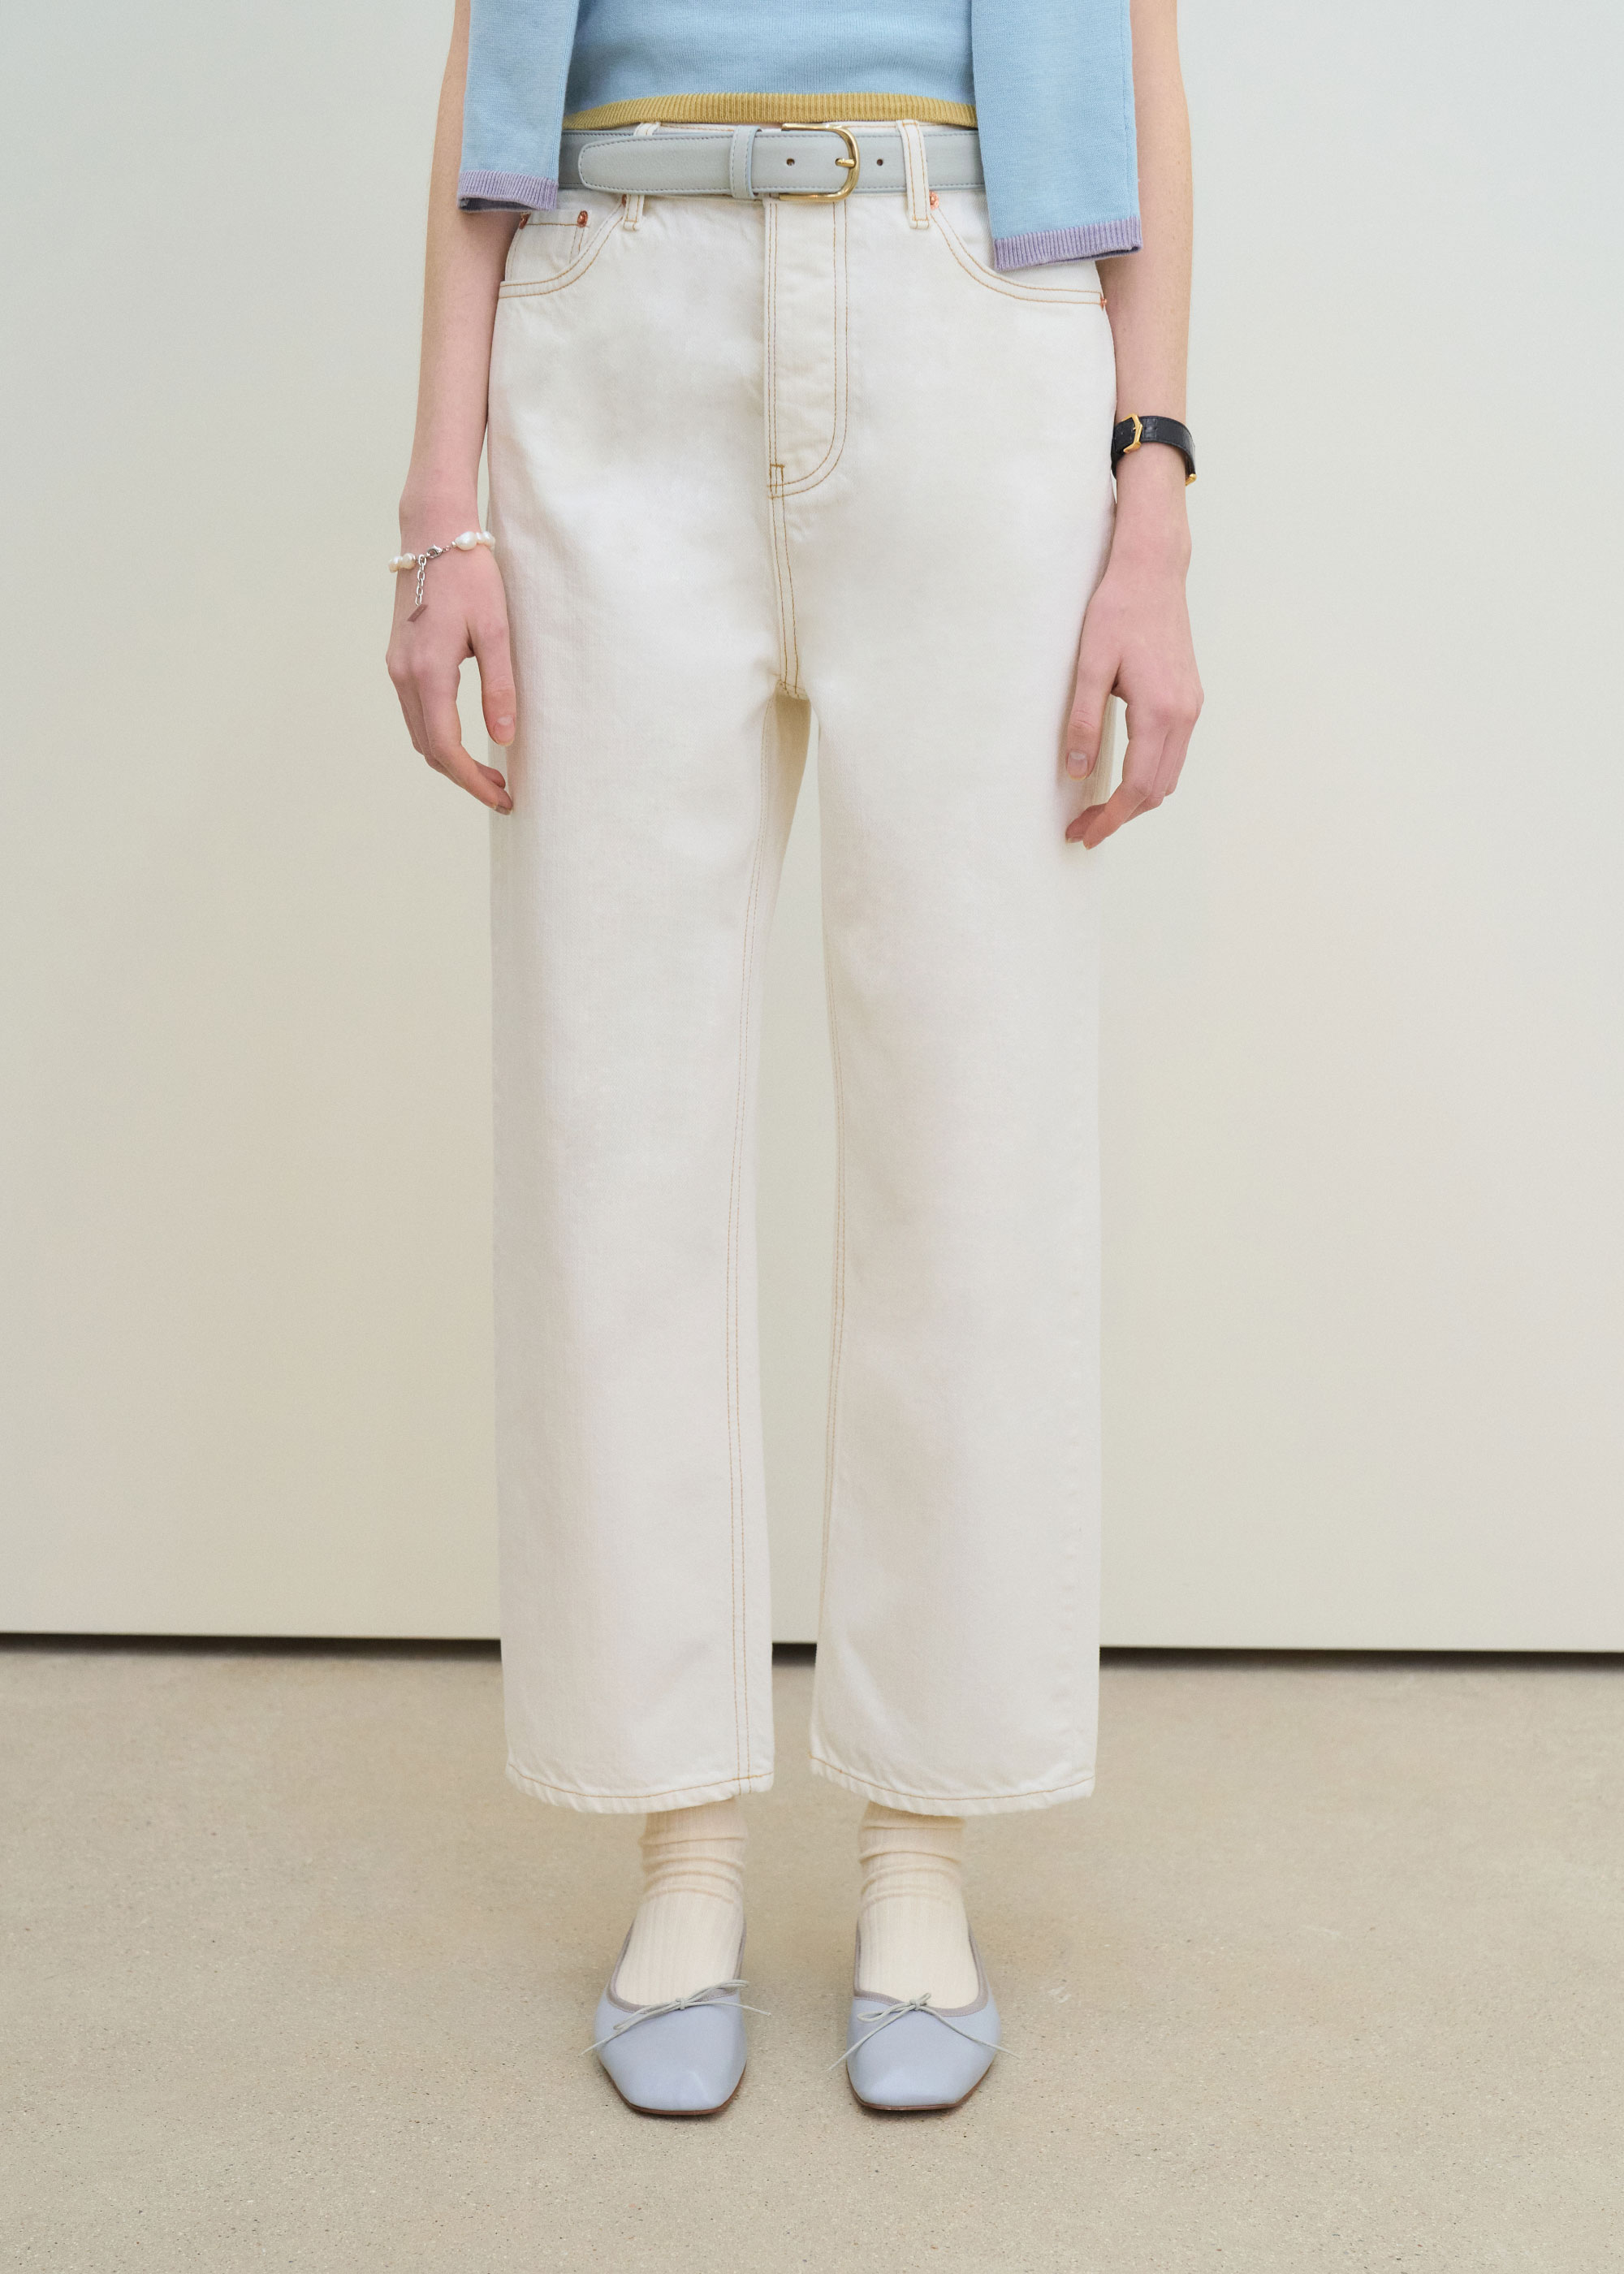 21S/S CHLOE PANTS [3COLOR]